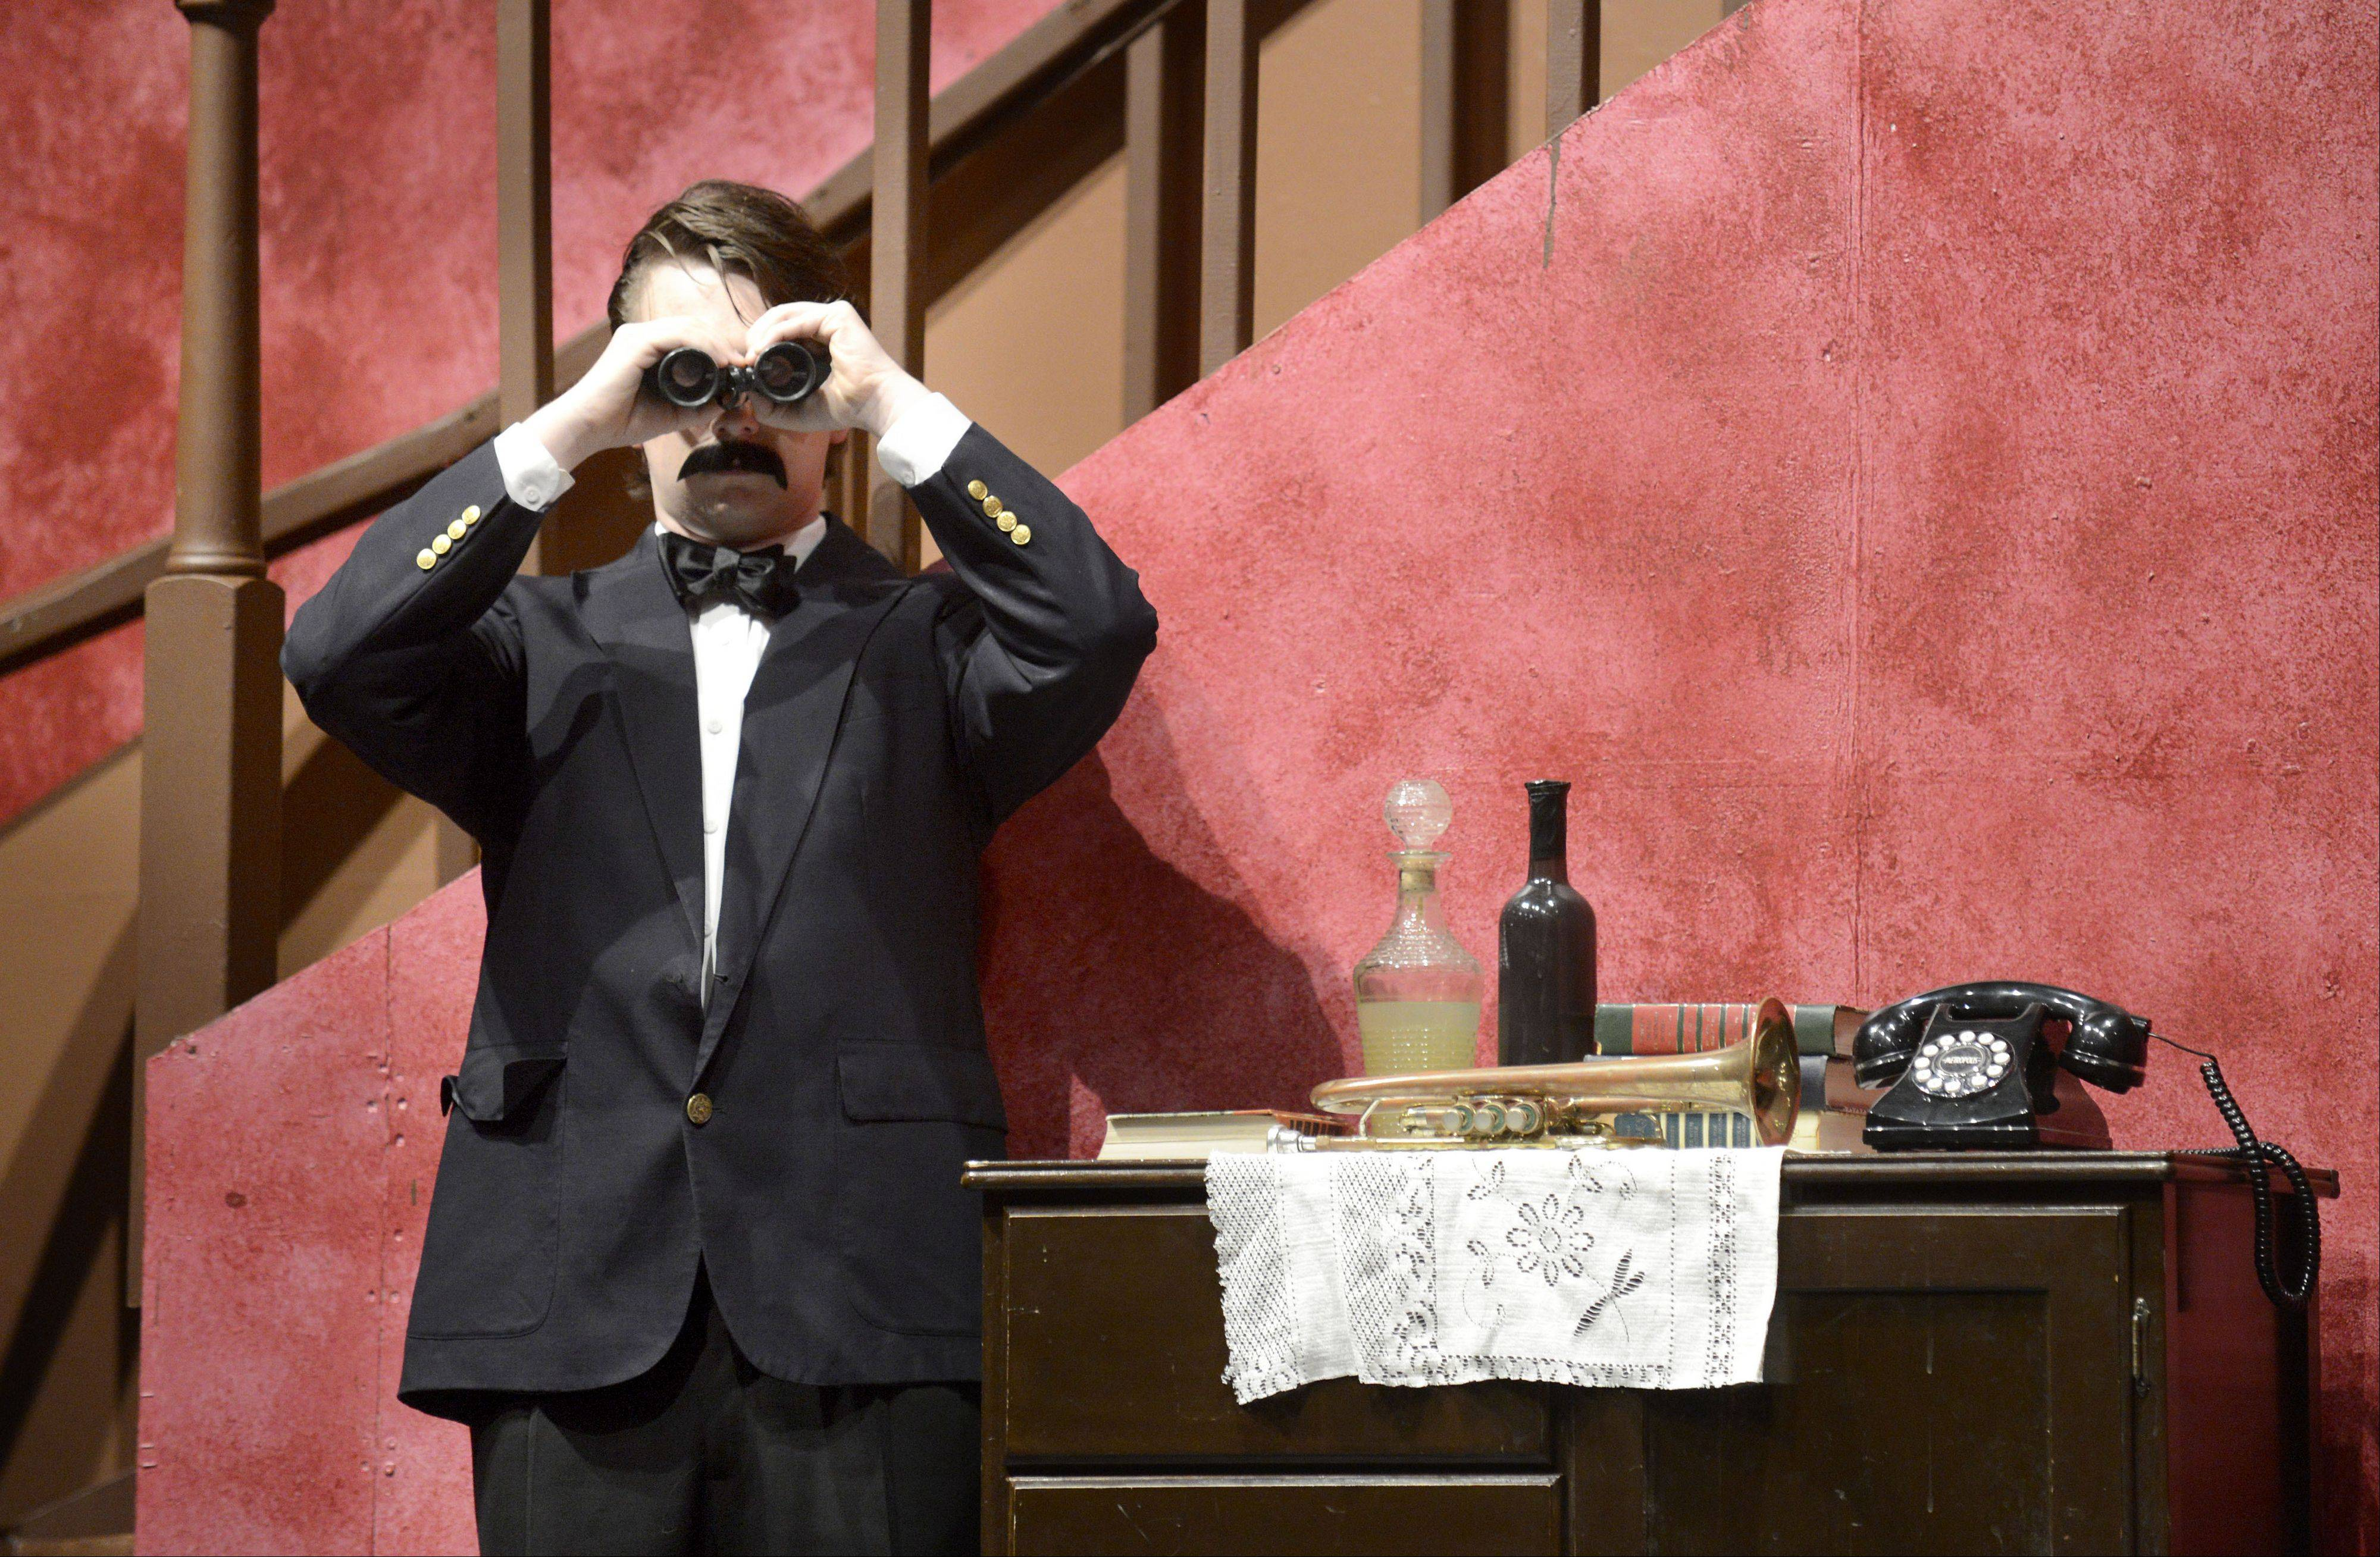 Michael Kelley portrays Teddy Brewster, who thinks he�s Teddy Roosevelt, in Elgin High School�s production of �Arsenic and Old Lace.�